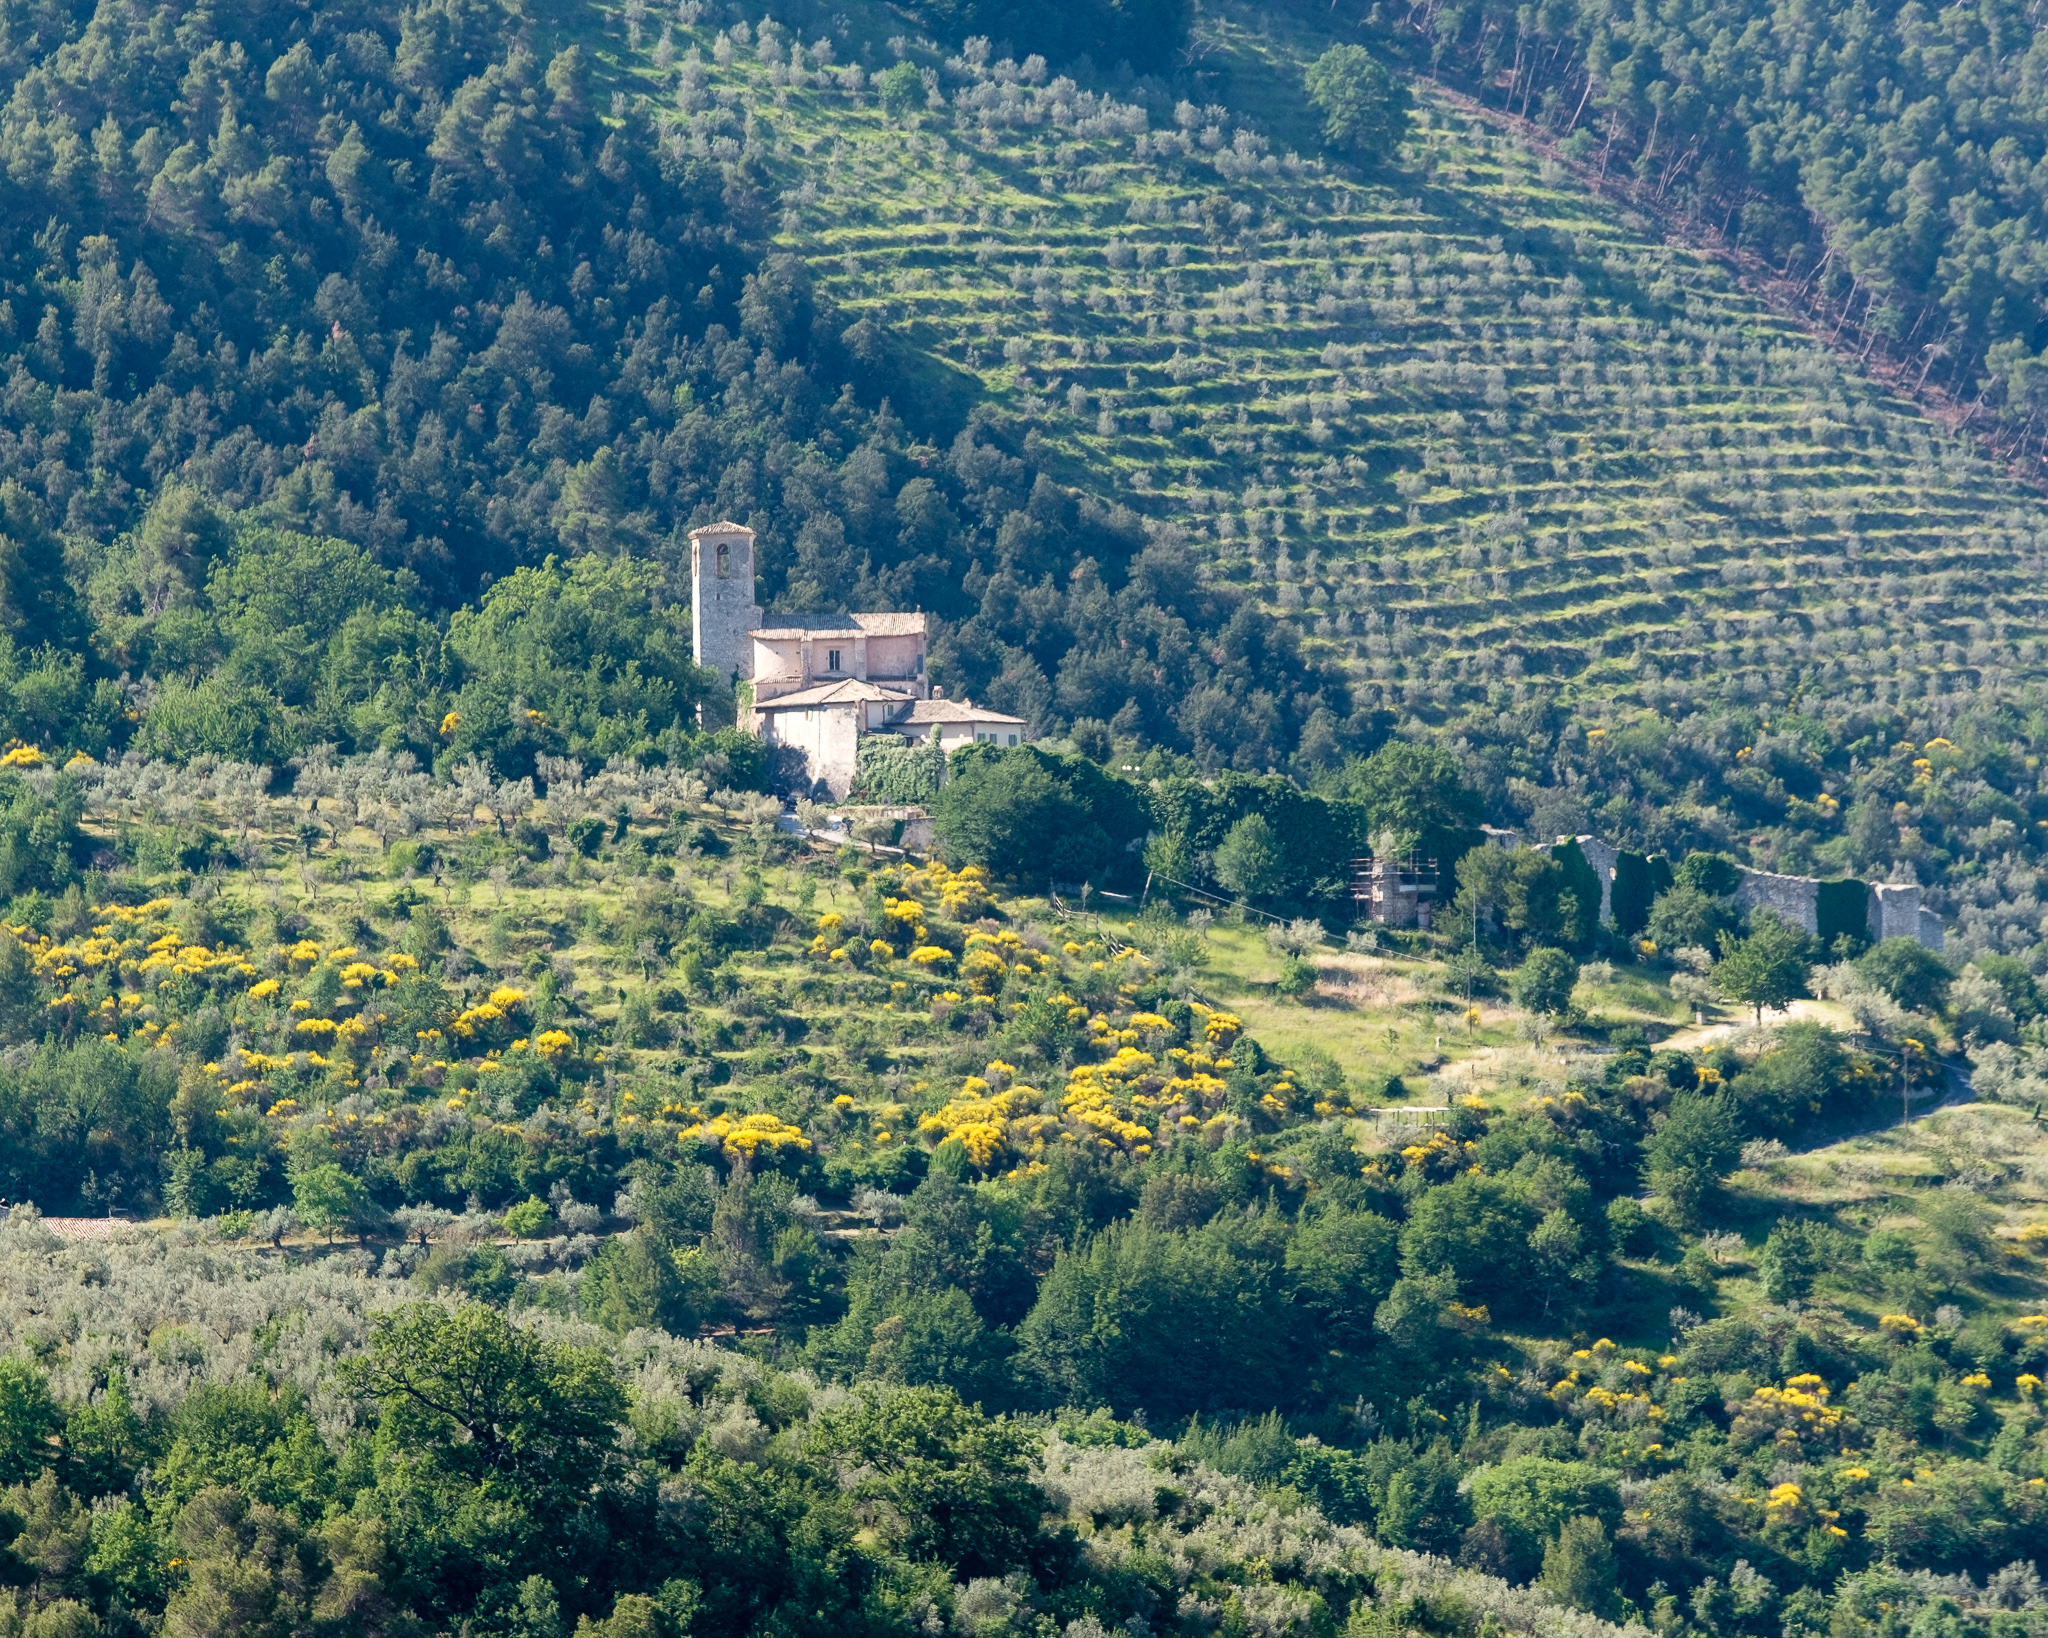 View of the central Italian countryside, with groves of olive trees seen behind an older structure.